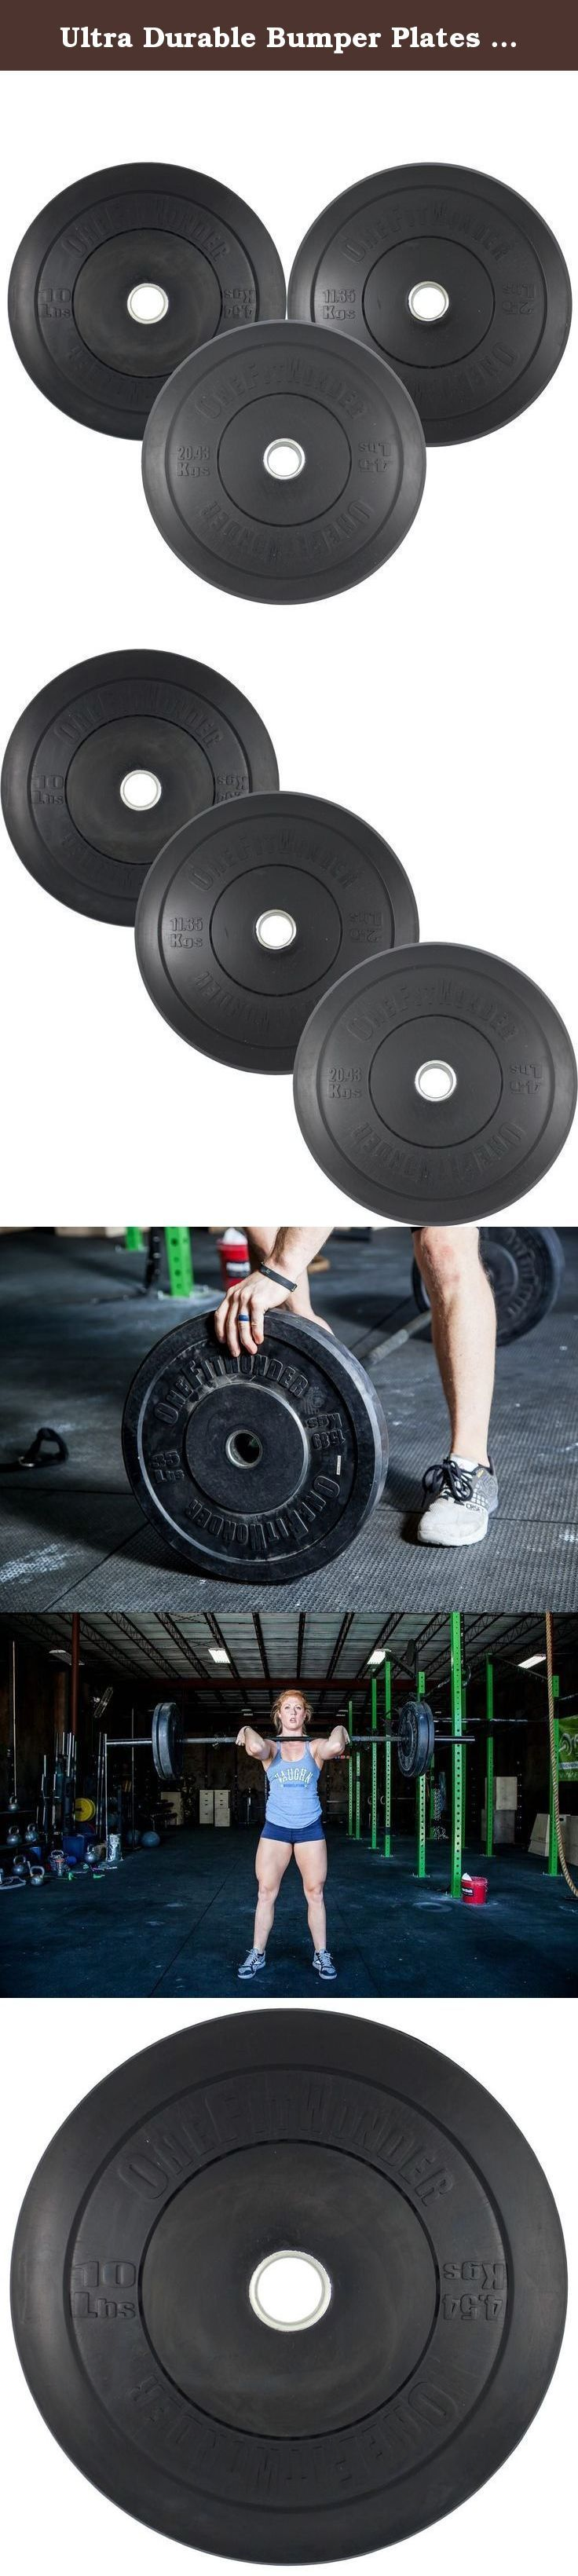 Ultra Durable Bumper Plates Set - Black Virgin Rubber 160 Pound Olympic Solid Weight Plates for Crossfit Training Weight Lifting Gym By Onefitwonder Pair of 10 Lbs,25 Lbs,45 Lbs. WHAT IF YOU HAD BUMPER PLATES WITH NO COMPROMISES? These OneFitWonder bumper plates are well-known for having the lowest price , best durability , best warranty , and best performance available. Start with accuracy . The OneFitWonder bumper plates are accurate to within 10 grams of stated weight. Many other…